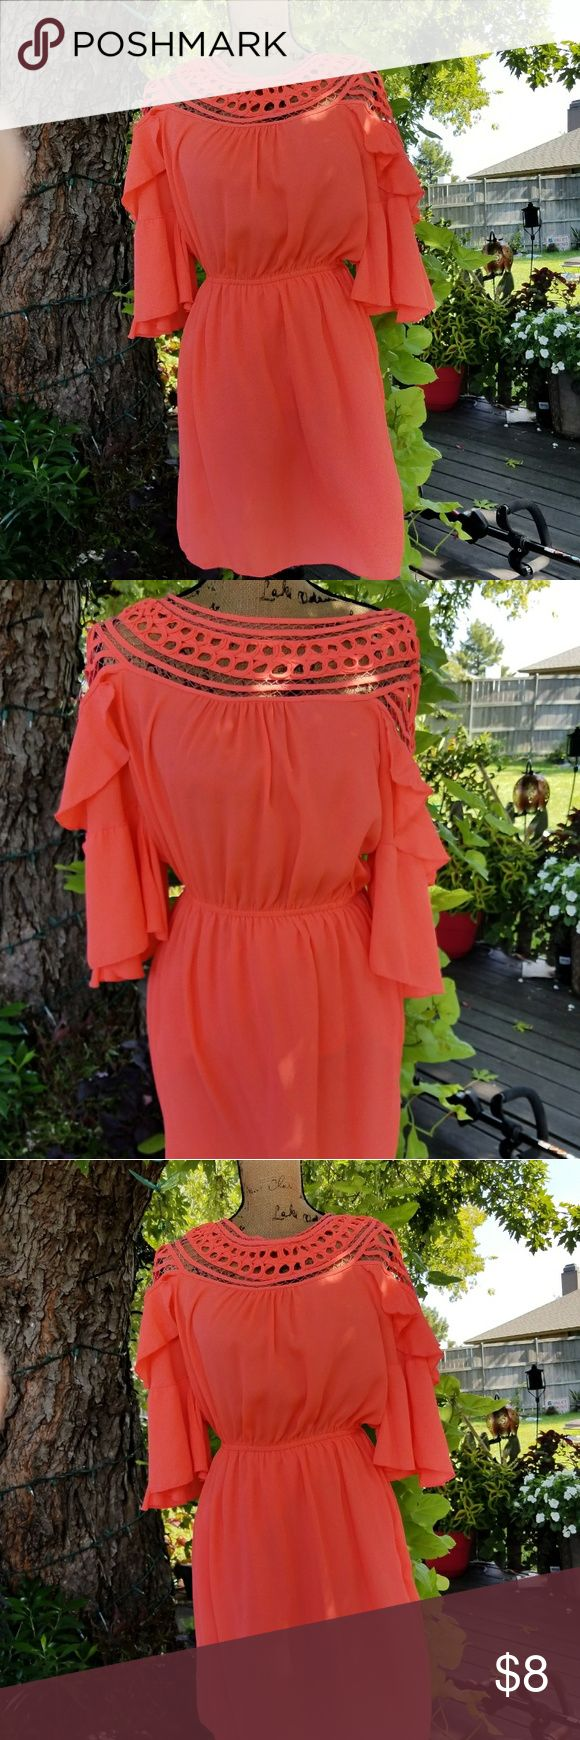 Bright Orange Dress Bright, bold, and beautiful. With the dirty cutouts on the shoulders. Eye catching. One small strick pulled through on one if the pictures. Easily fixable. Priced accordingly Dresses Midi